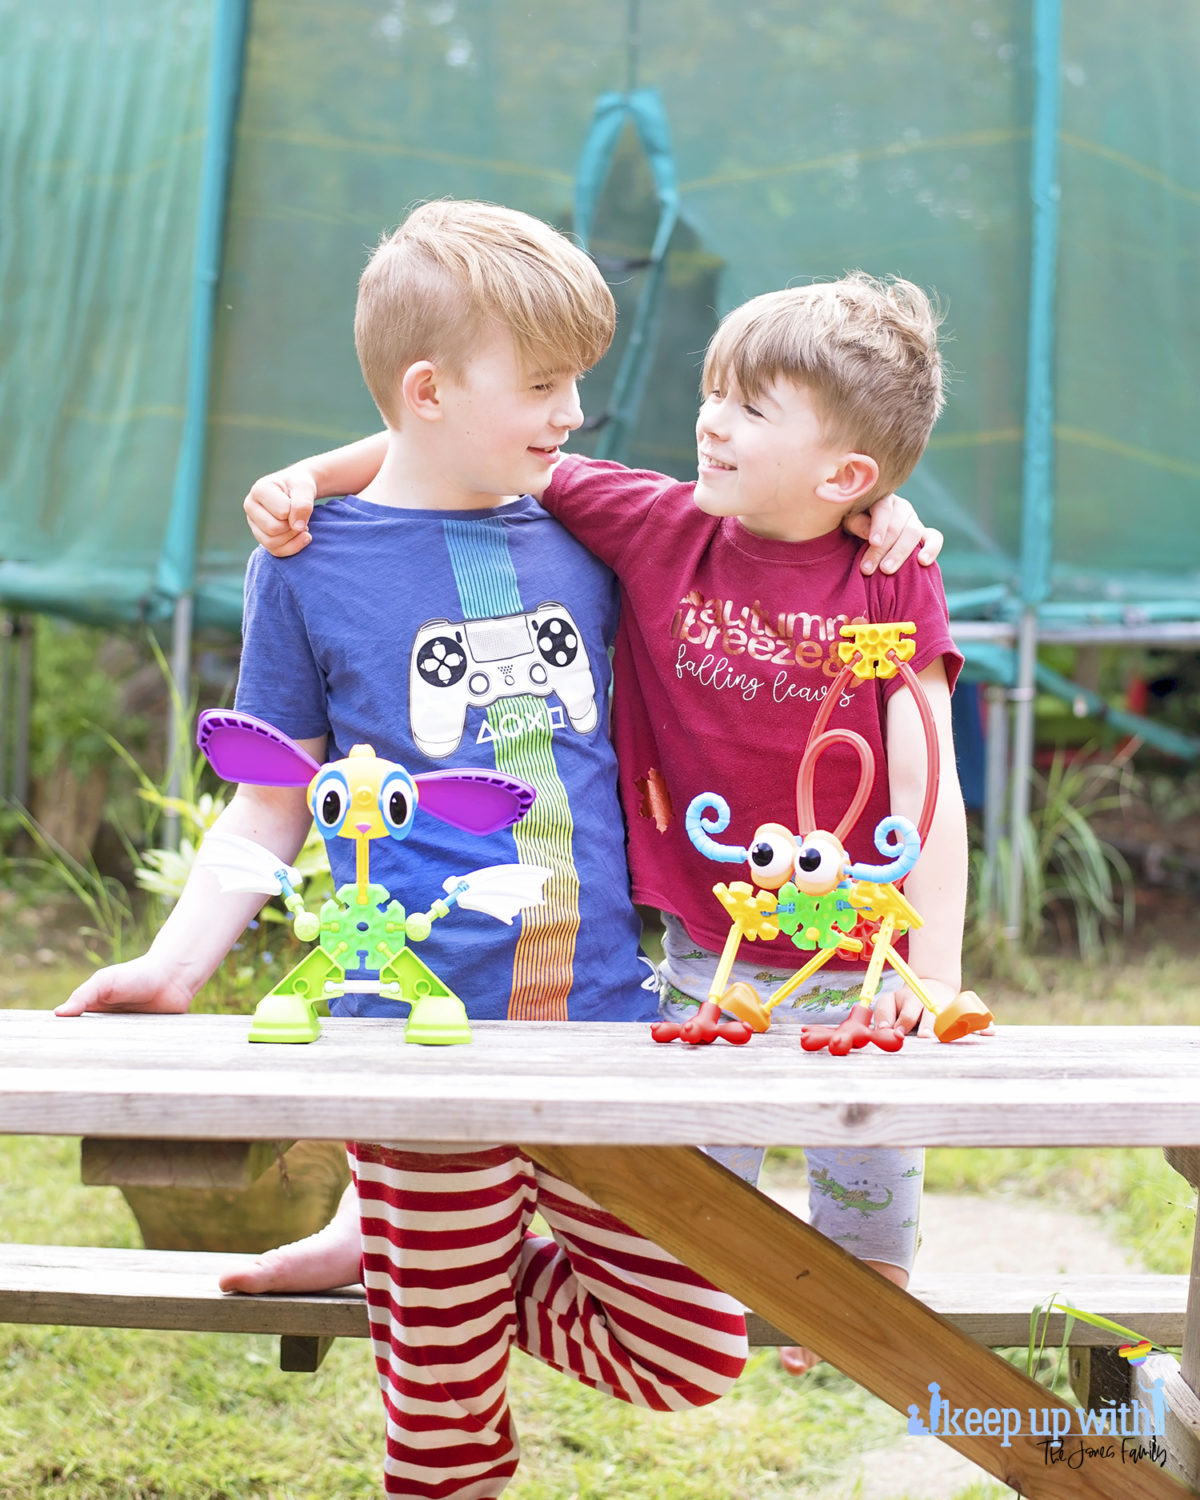 Image shows two boys with their arm around each other's shoulders, looking at each other.  On the wooden picnic table in front of them are two creatures which are made from pieces of the Kid K'nex Budding Builders construction toys box from Basic Fun UK.  By Keep Up With The Jones Family.